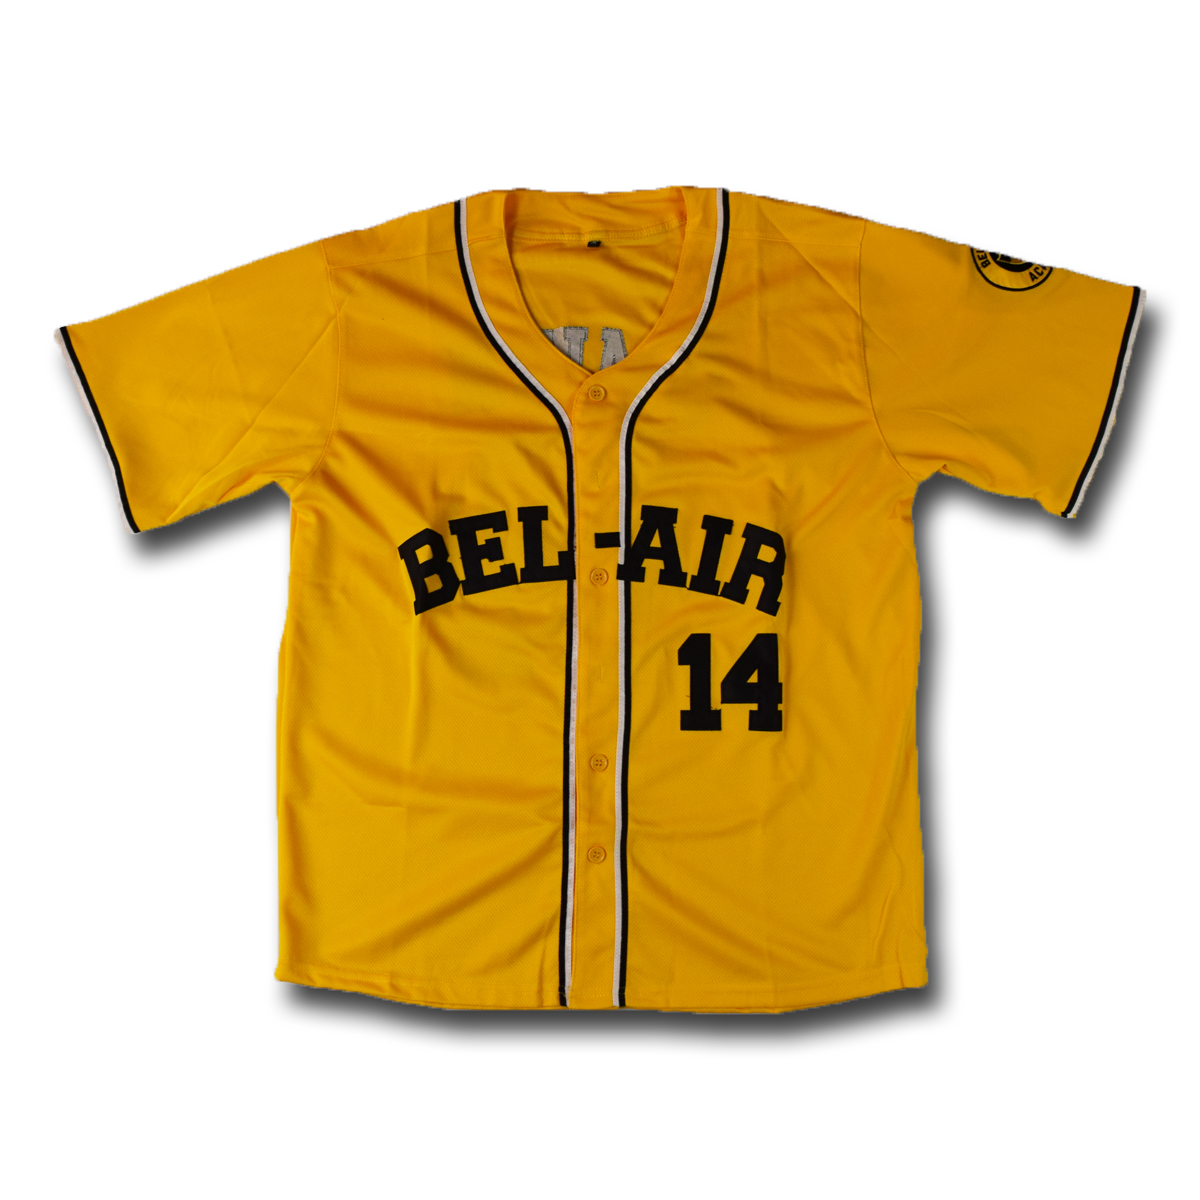 Smith #14 Bel-air Geel Honkbal Jersey